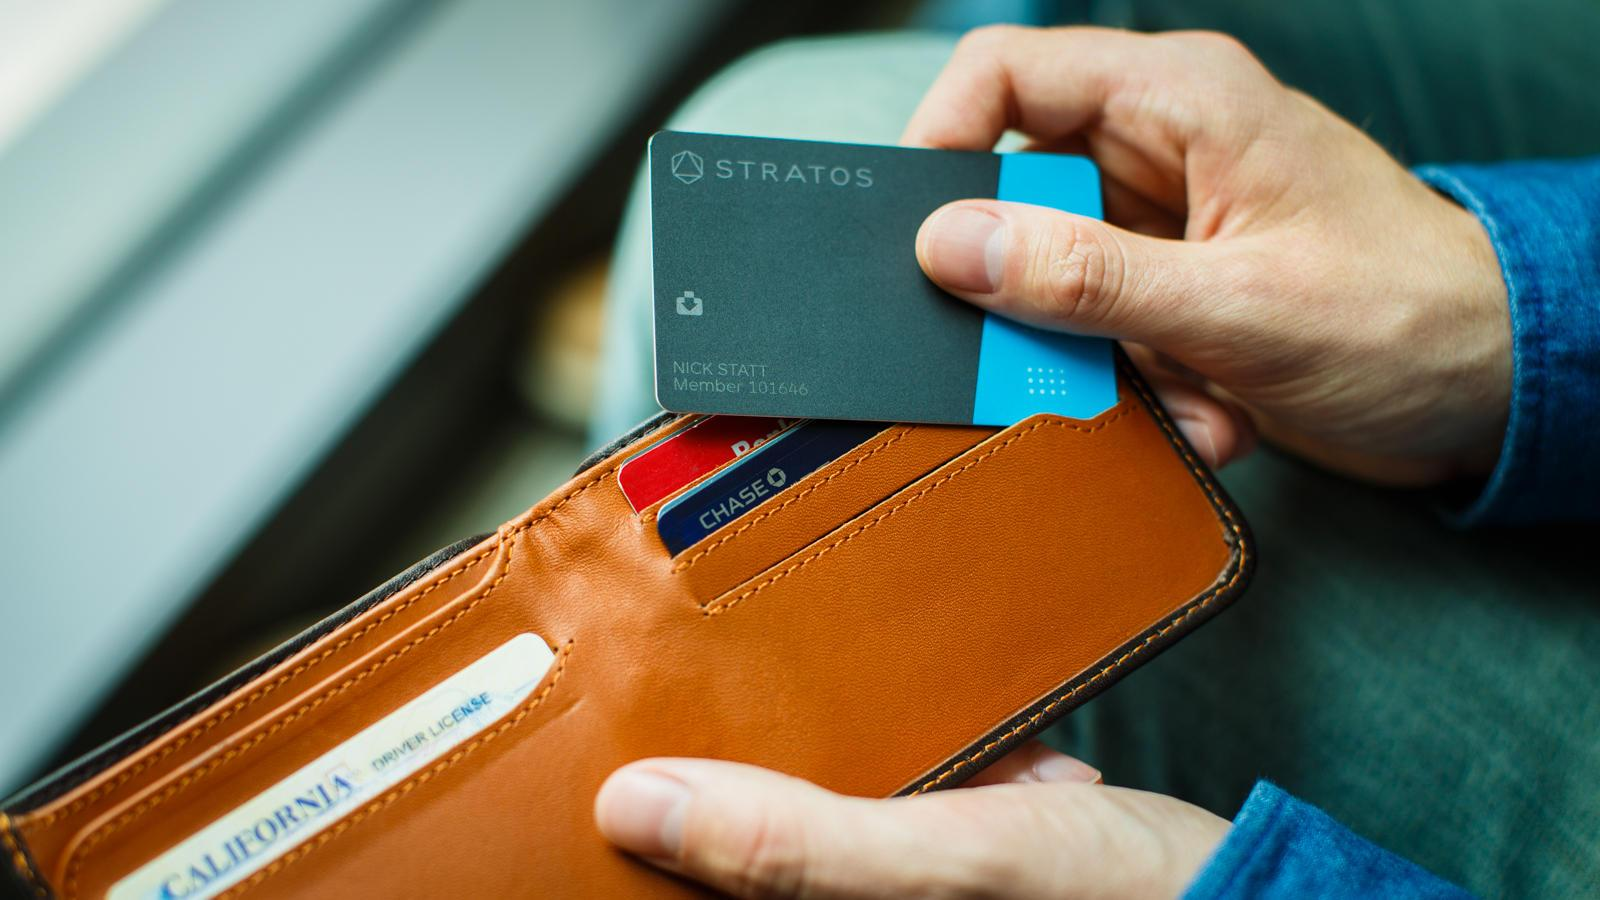 The smart card: Apple Pay competitor or simple stopgap?